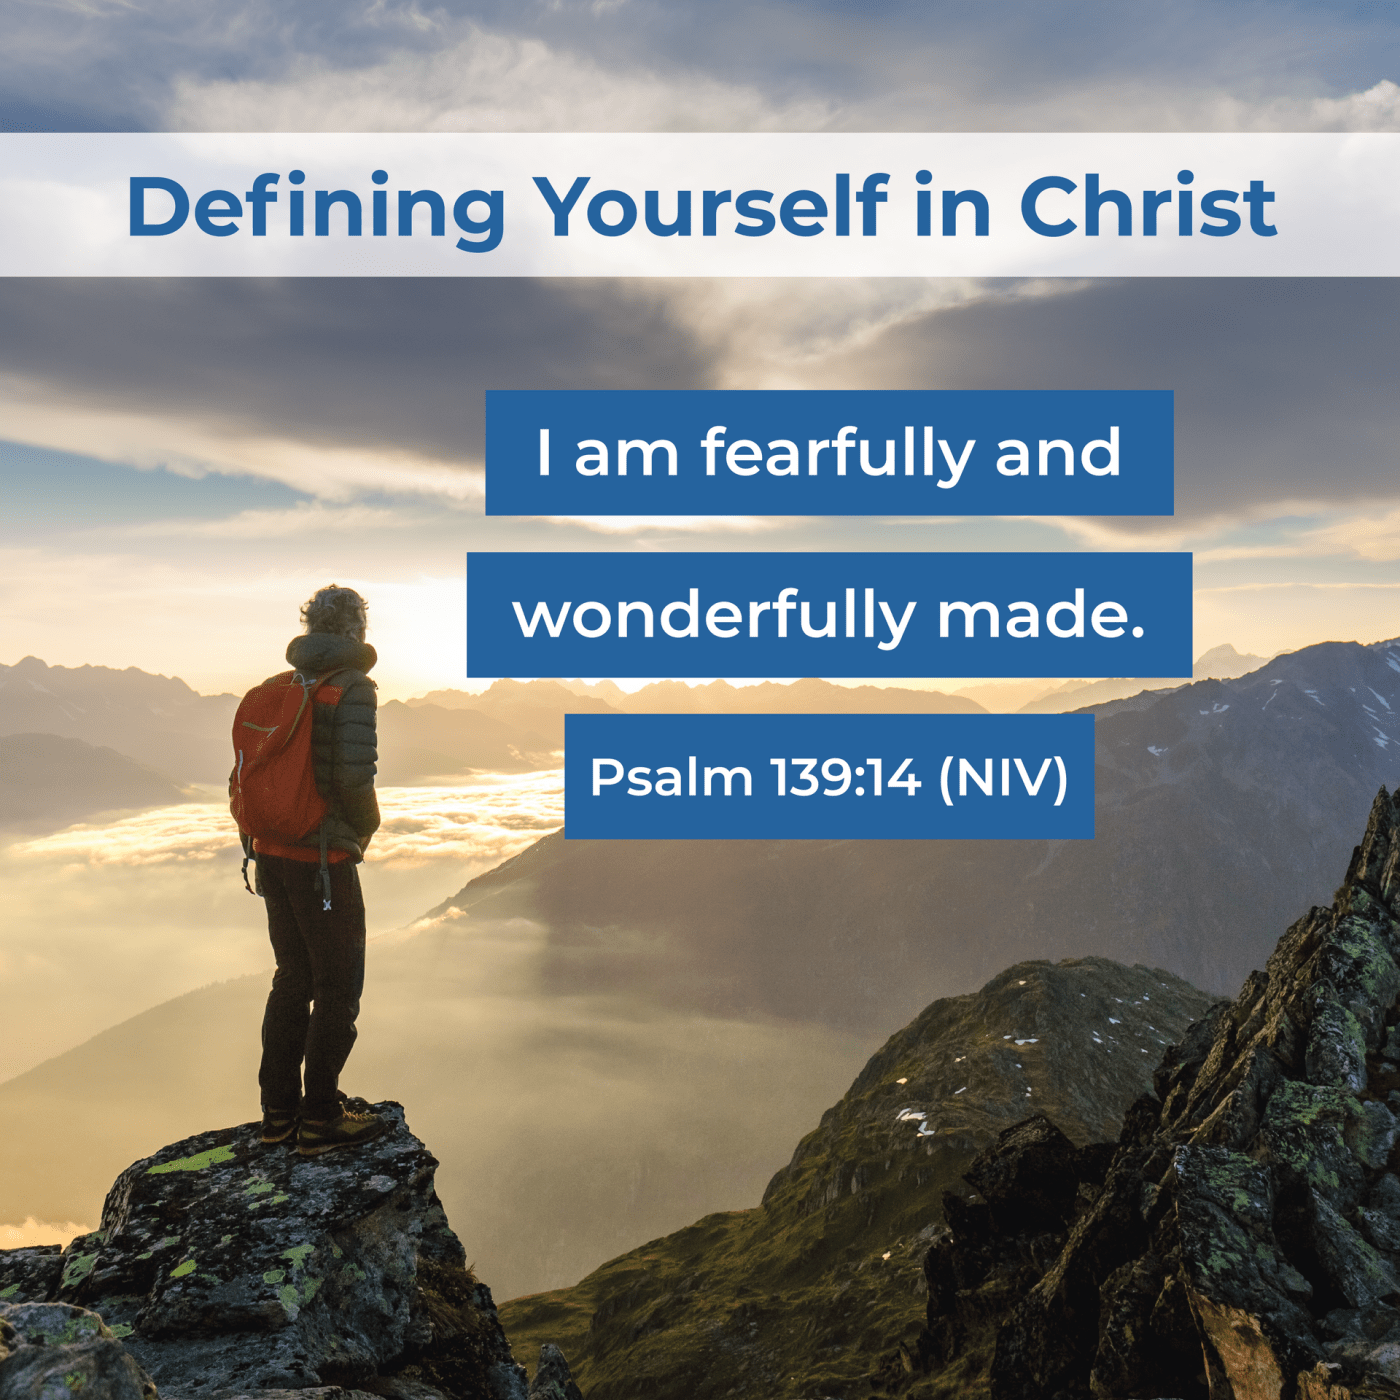 Defining Yourself in Christ. I am fearfully and wonderfully made. Psalm 139:14 (NIV).